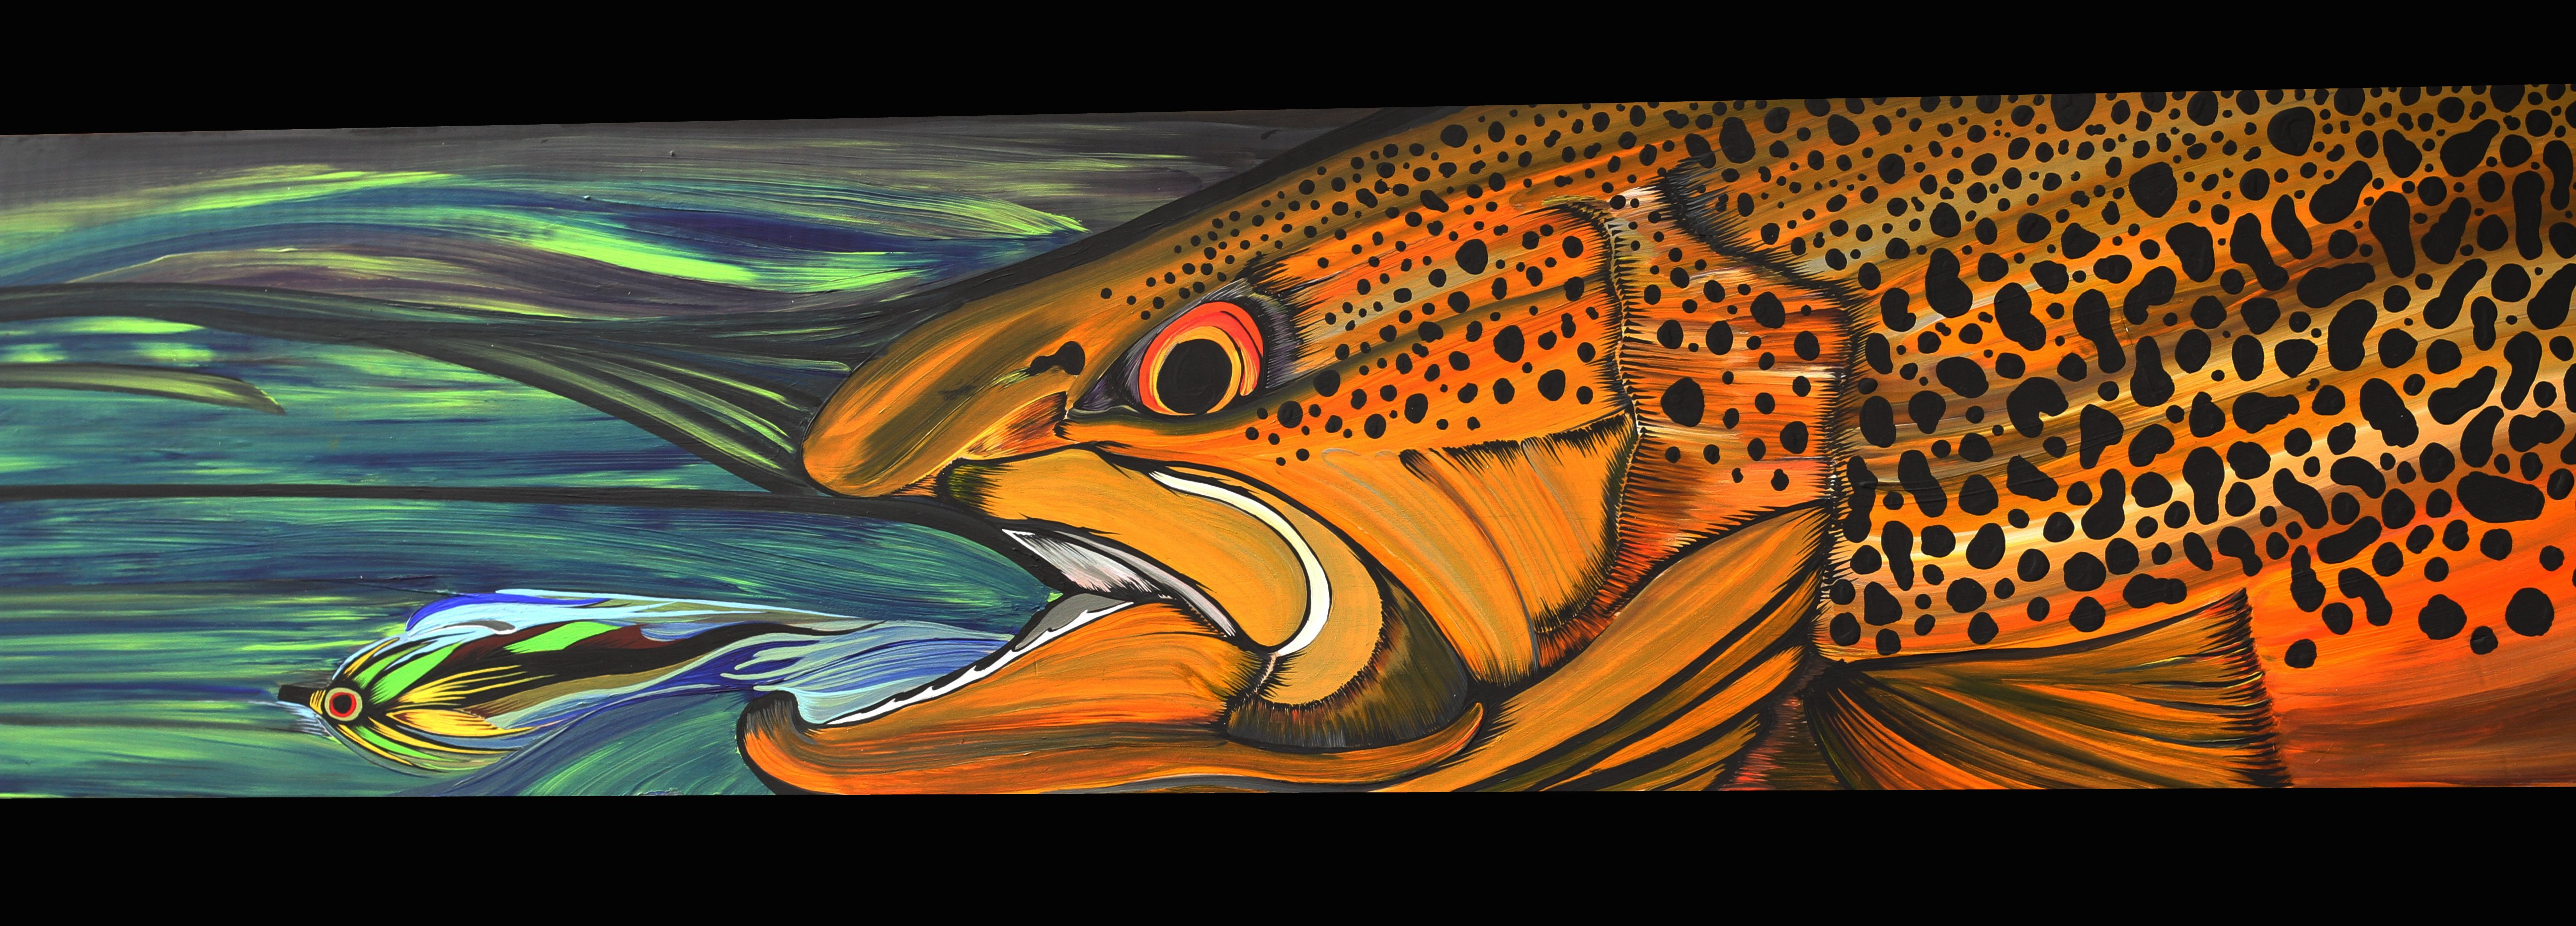 FISHING fish sport fishes bass trout artwork painting wallpaper 5184x1864